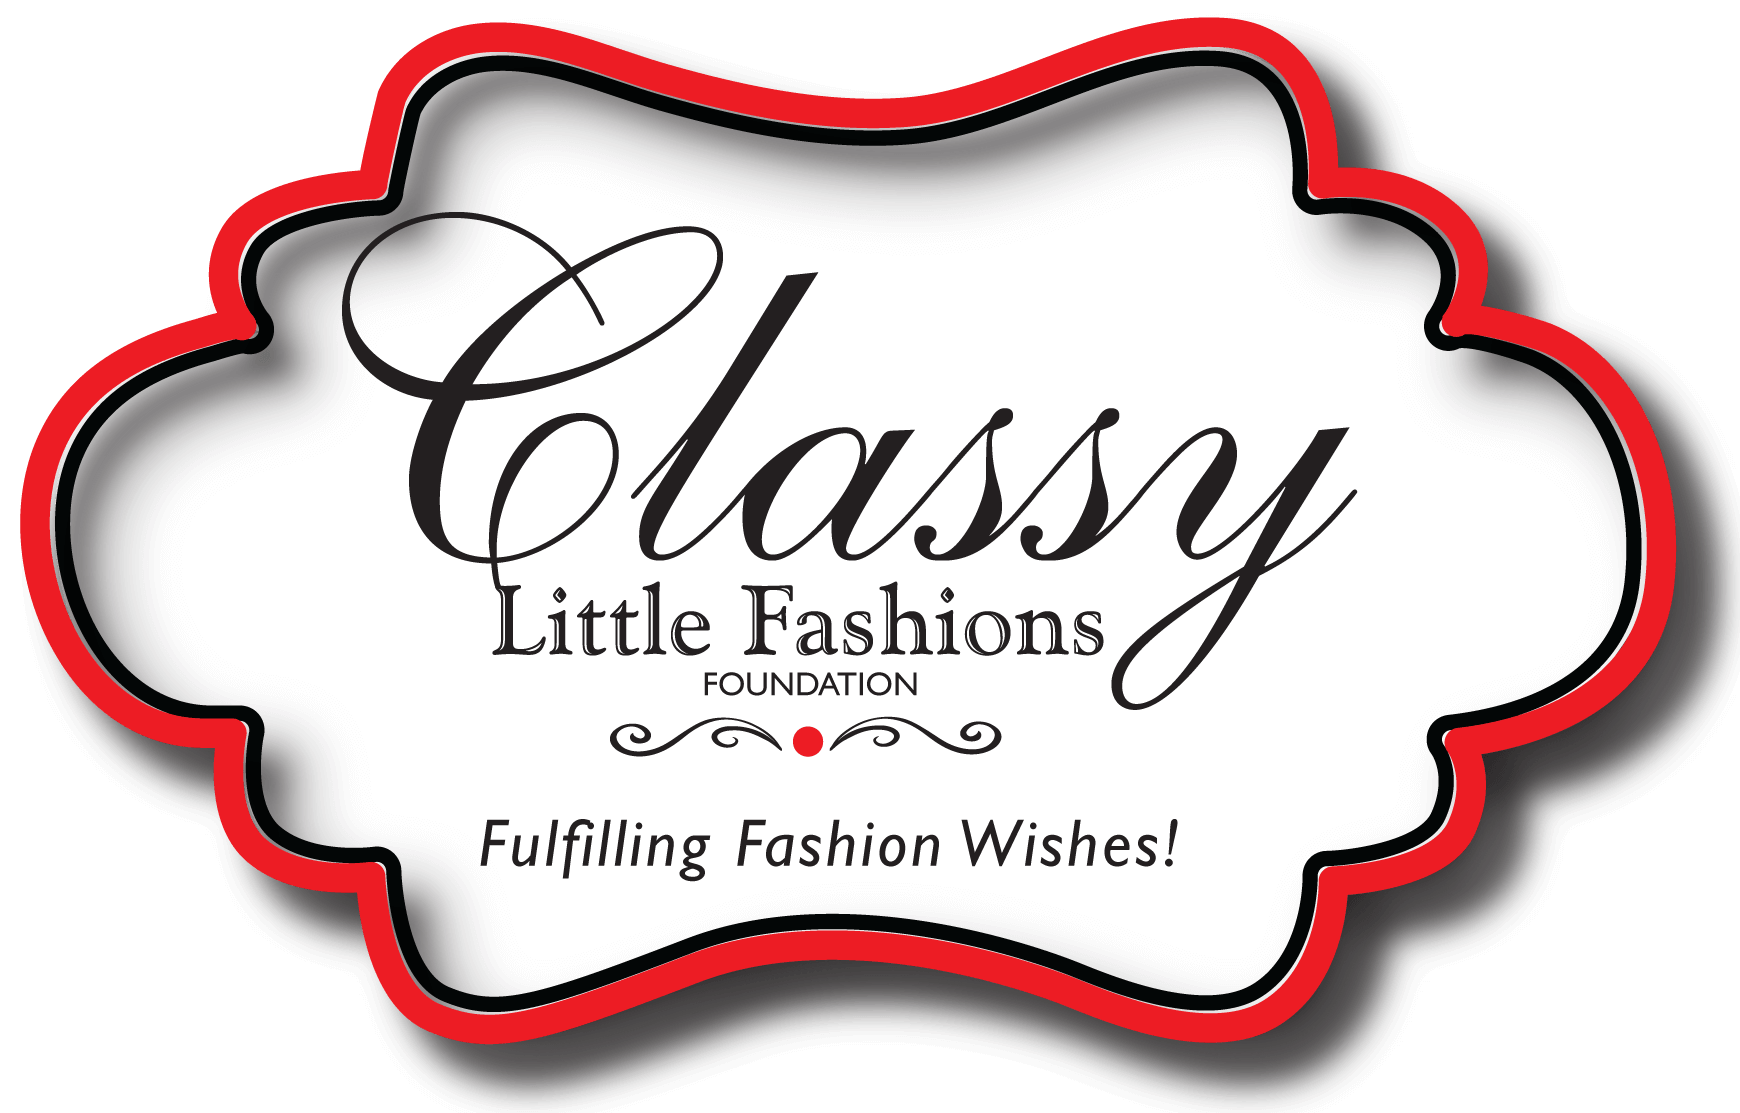 classy-little-fashions